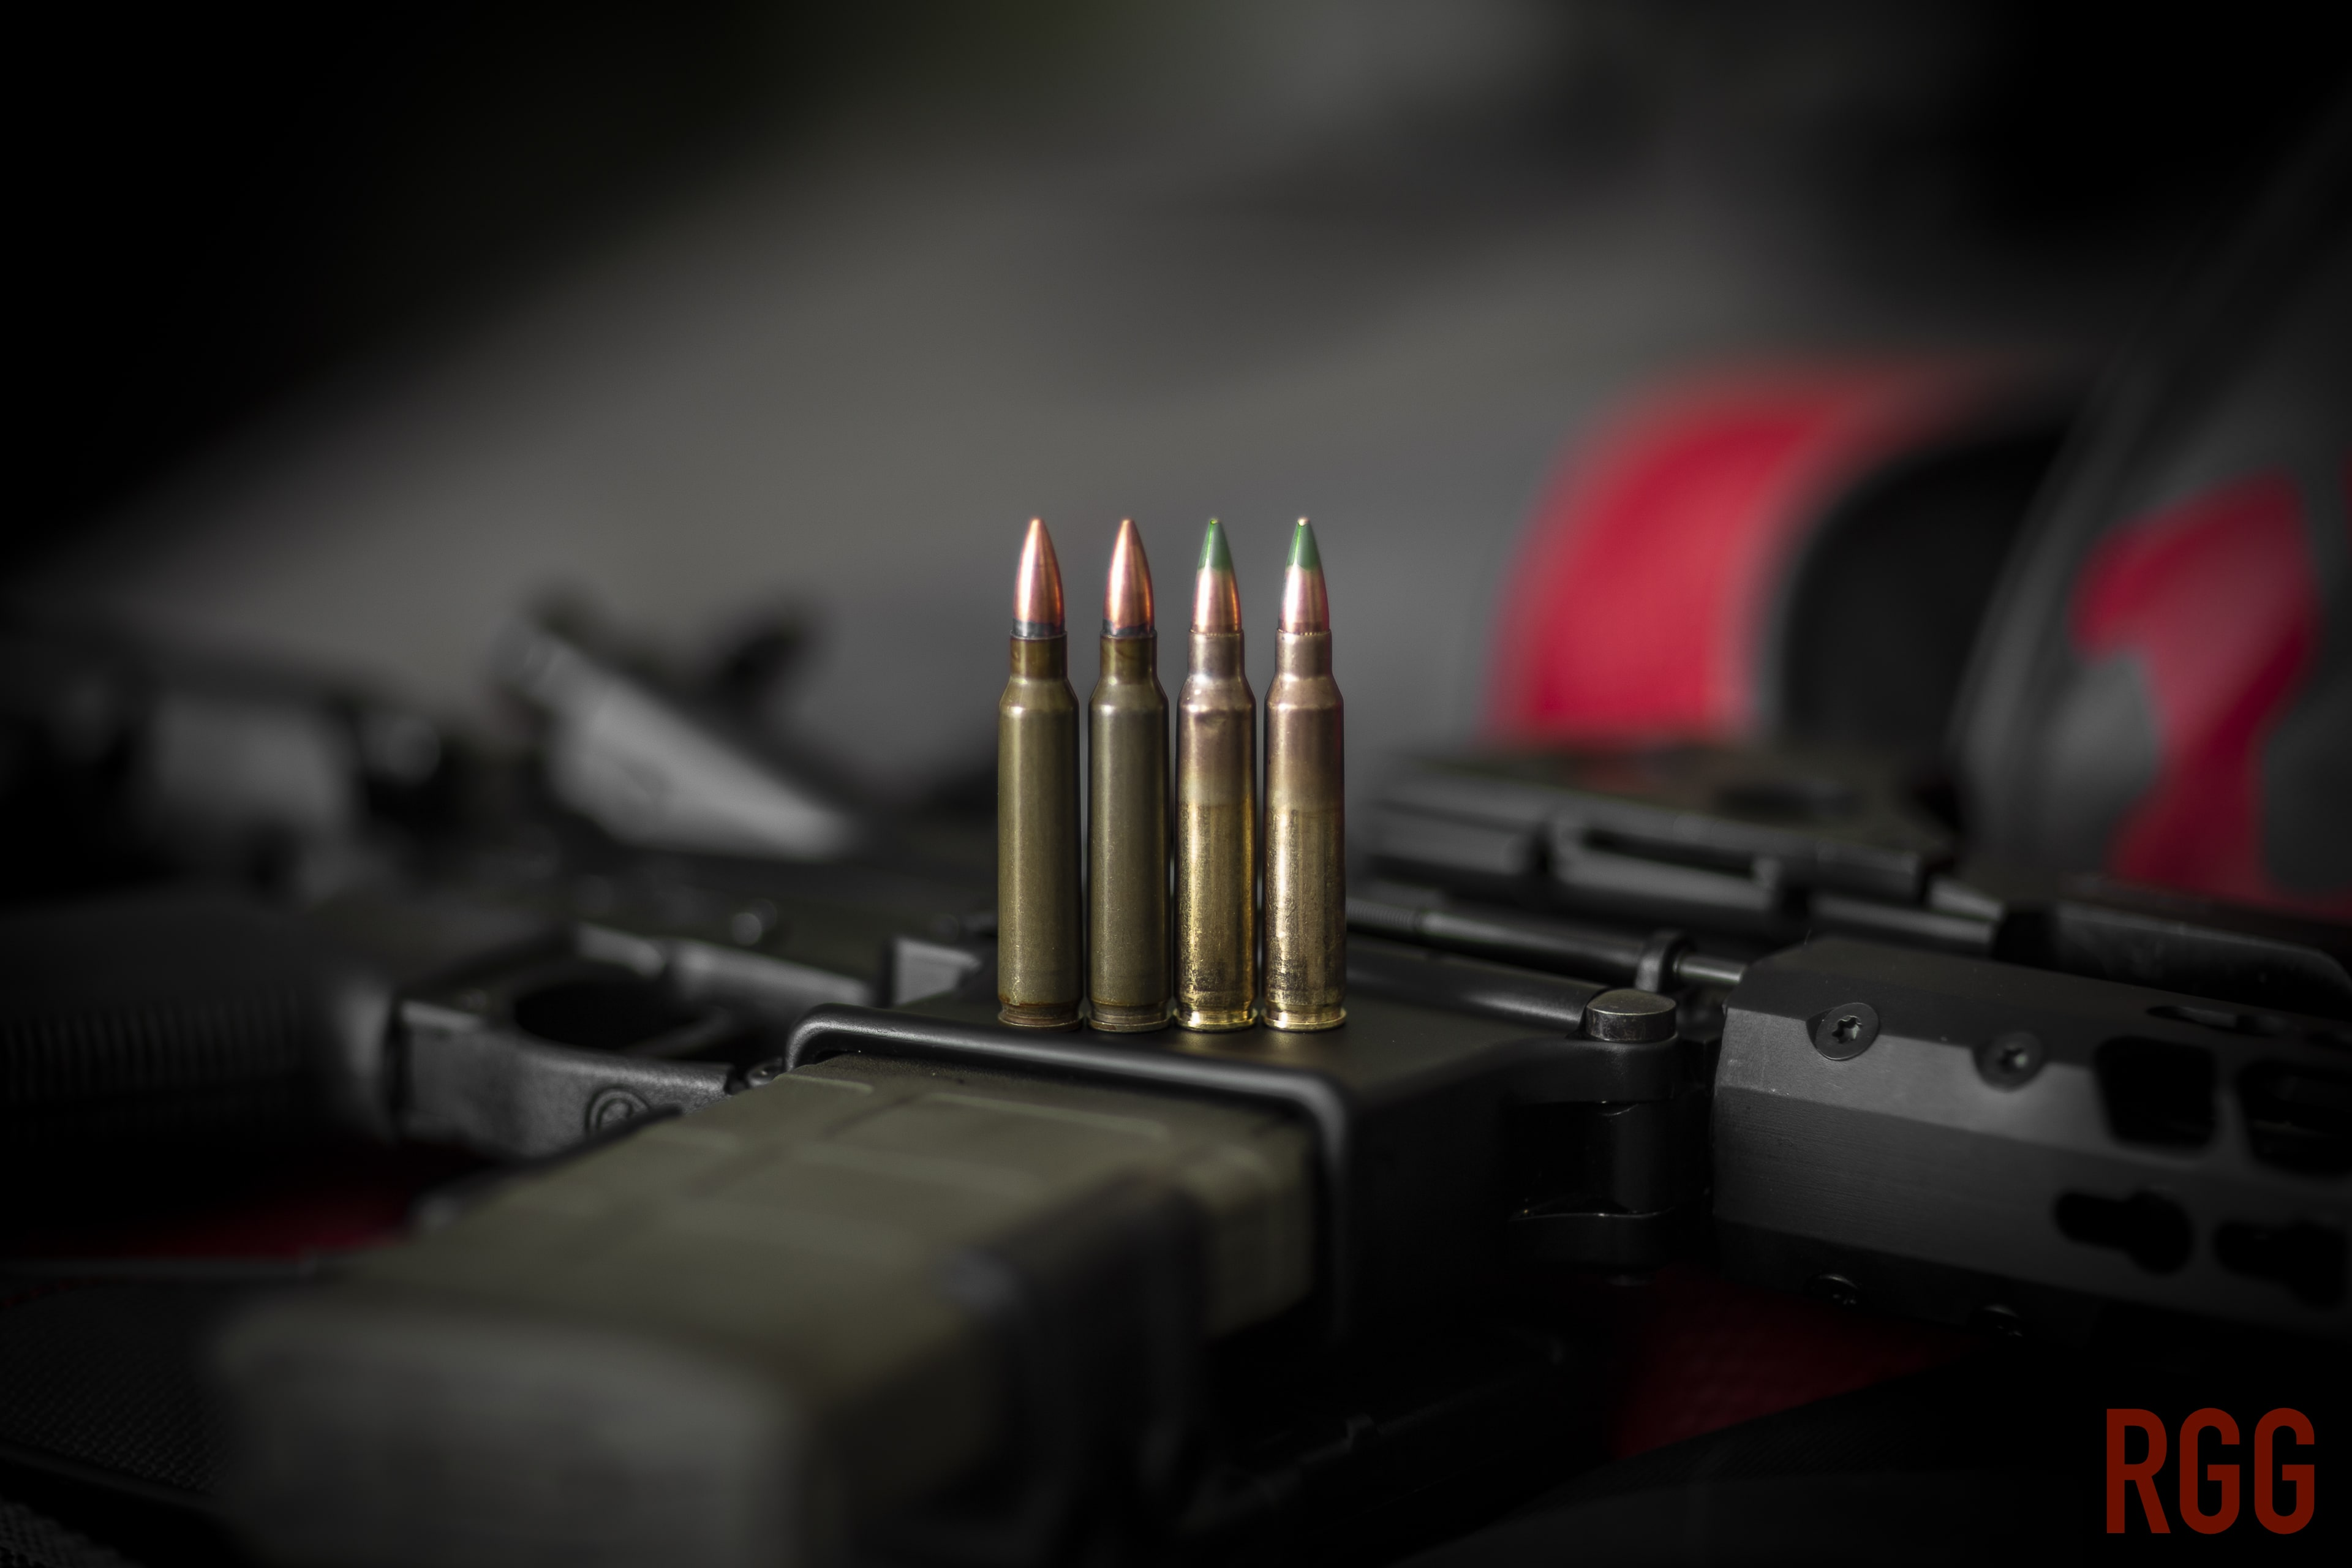 .223 Remington on the left, and M855 5.56mm on the right ammo.